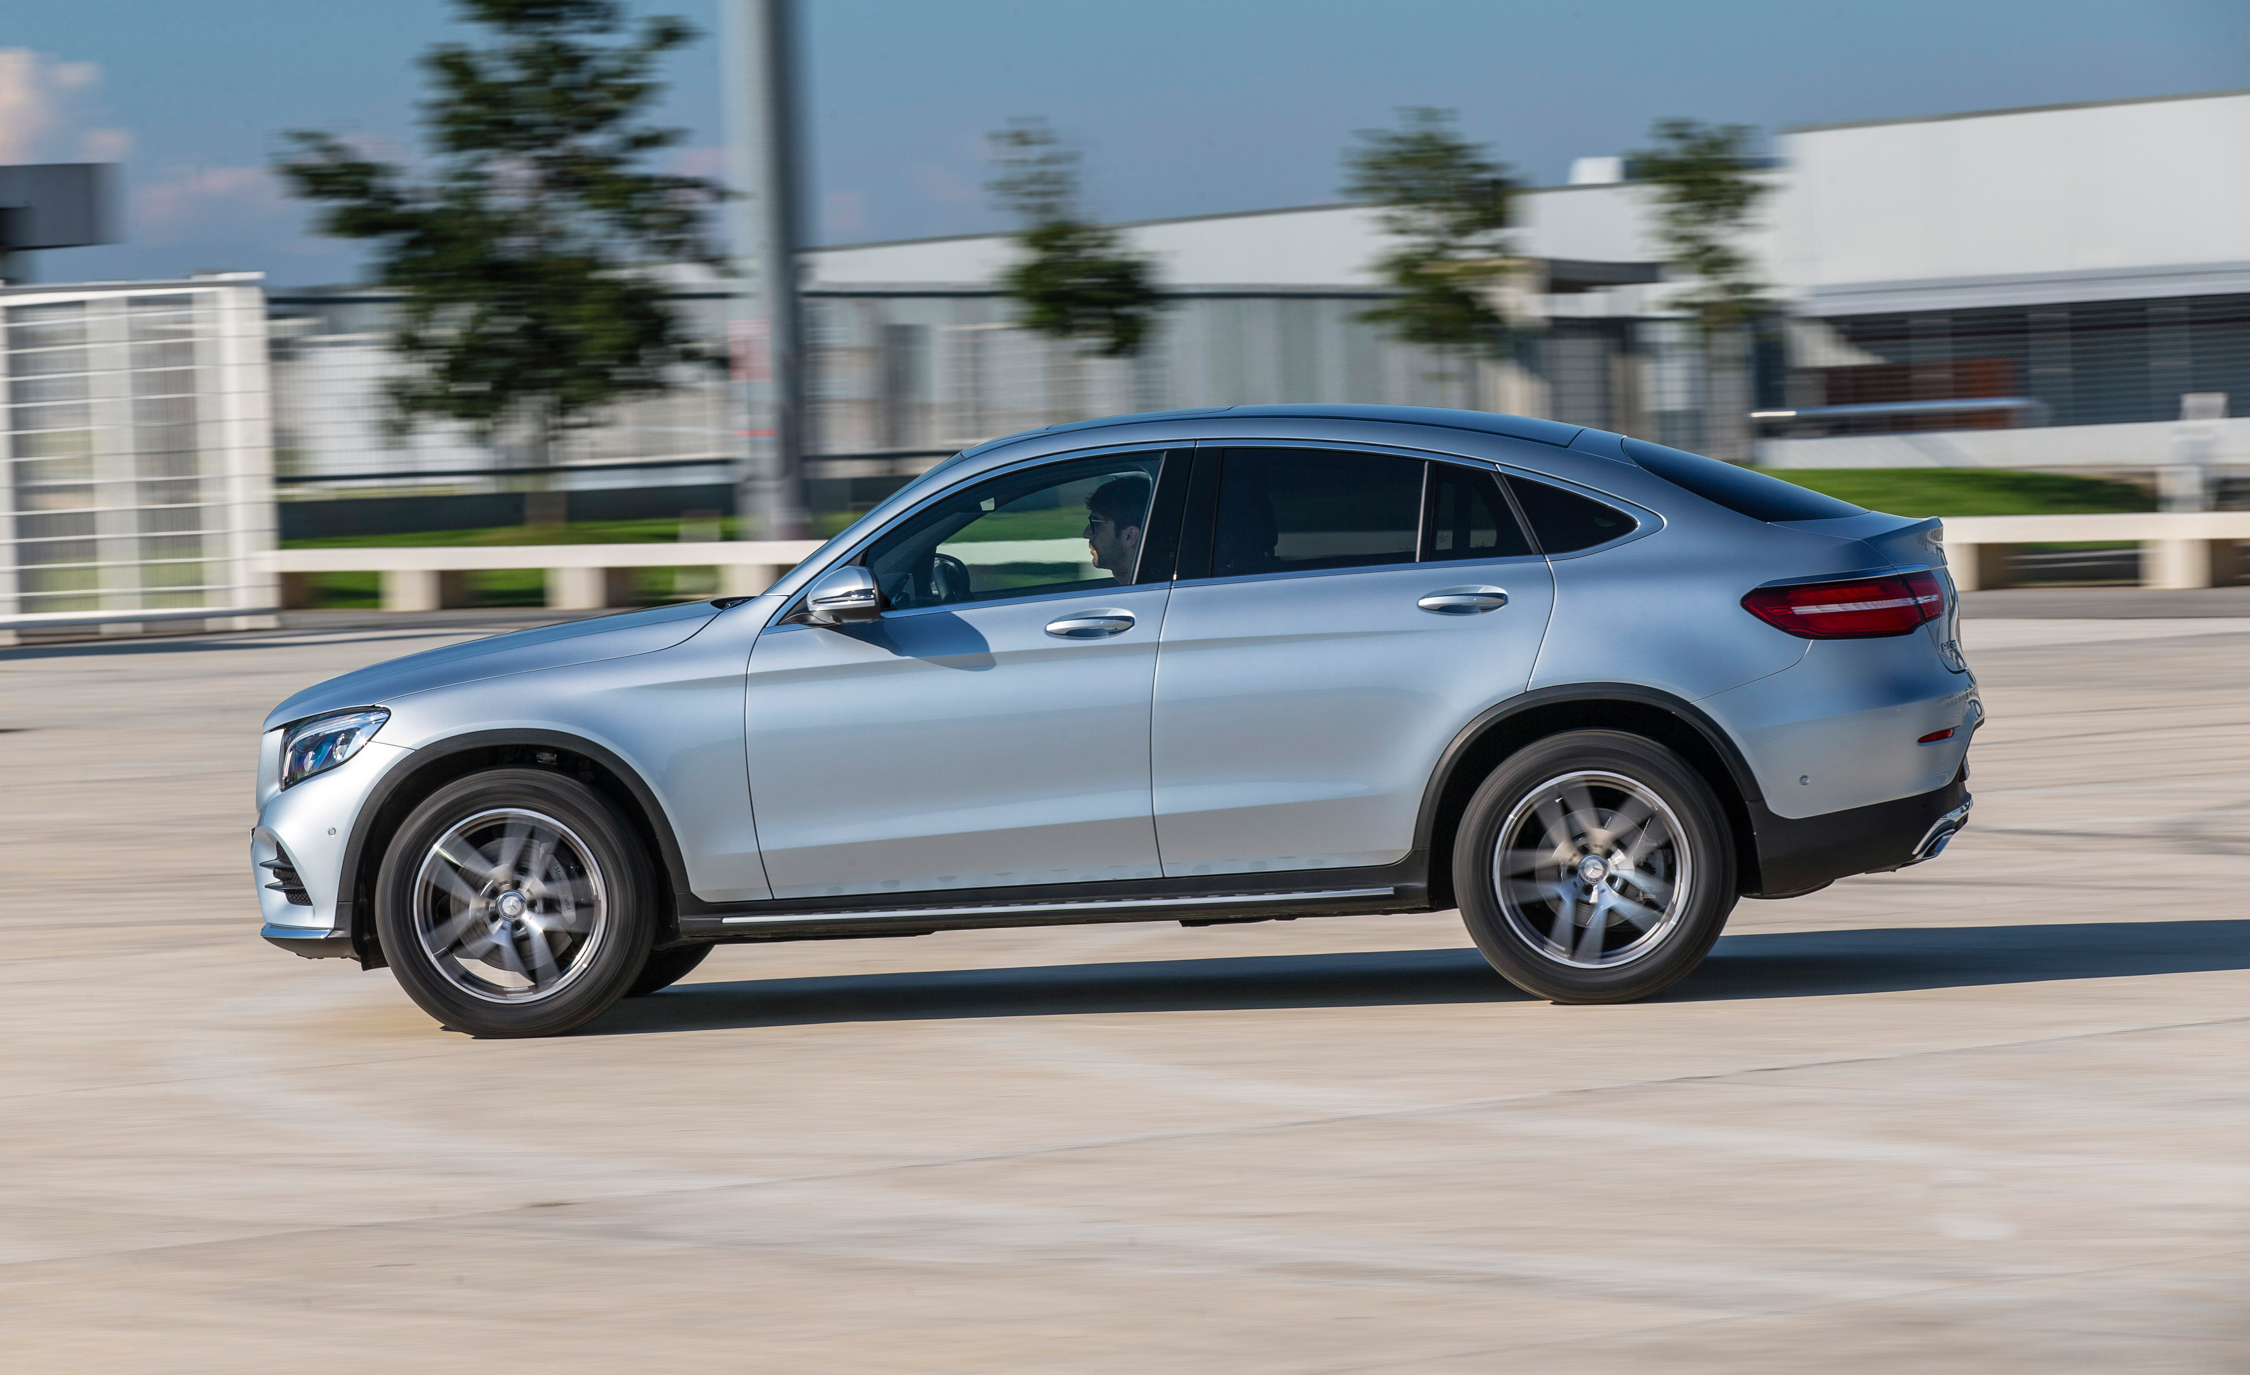 2017 Mercedes Benz GLC300 4MATIC Coupe (Photo 2 of 19)